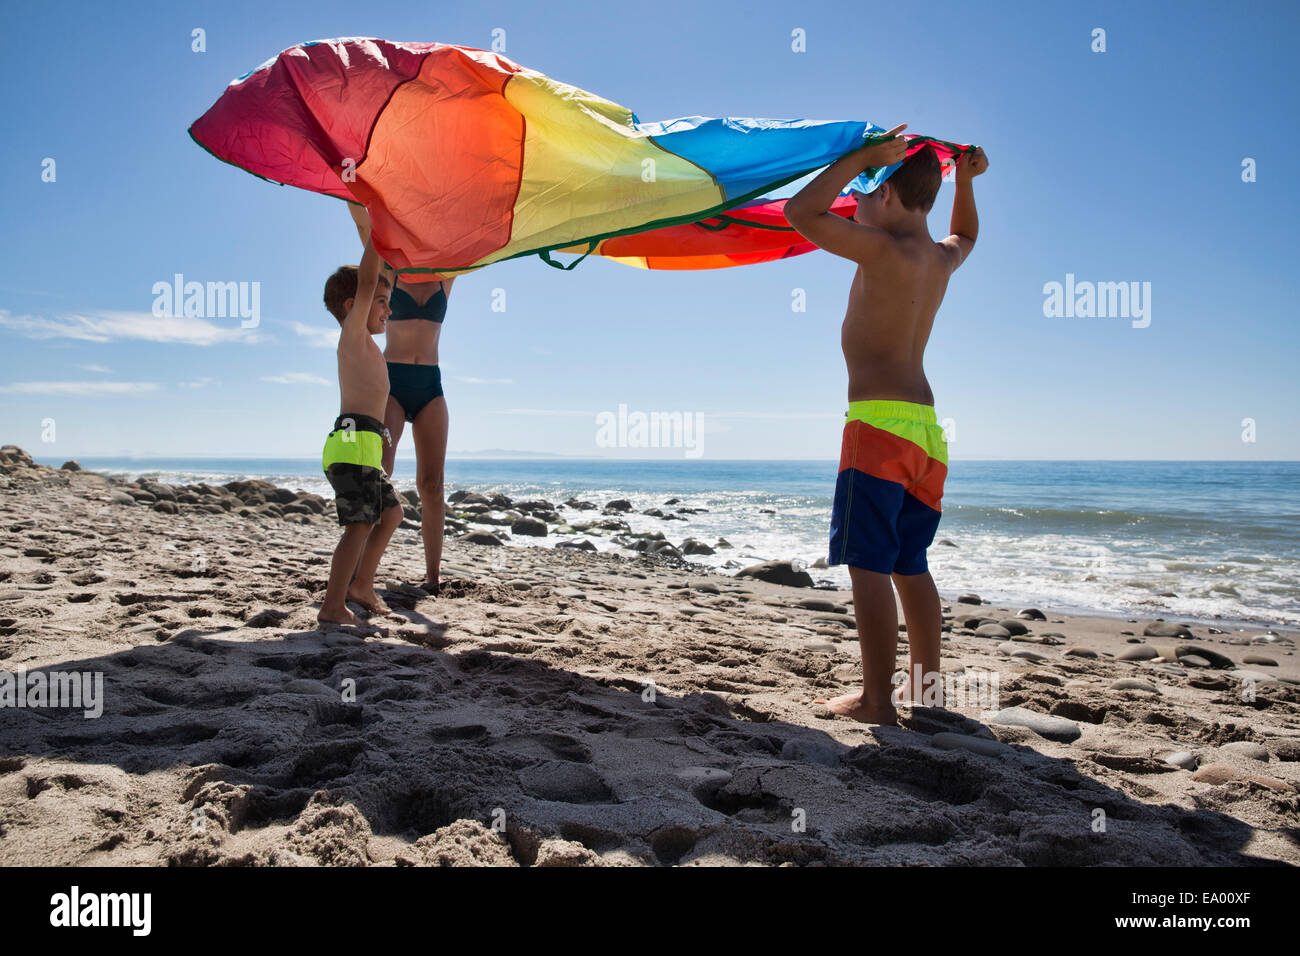 Mature woman and two sons holding up multi colored textile on beach, County Park, Los Angeles, California, USA - Stock Image